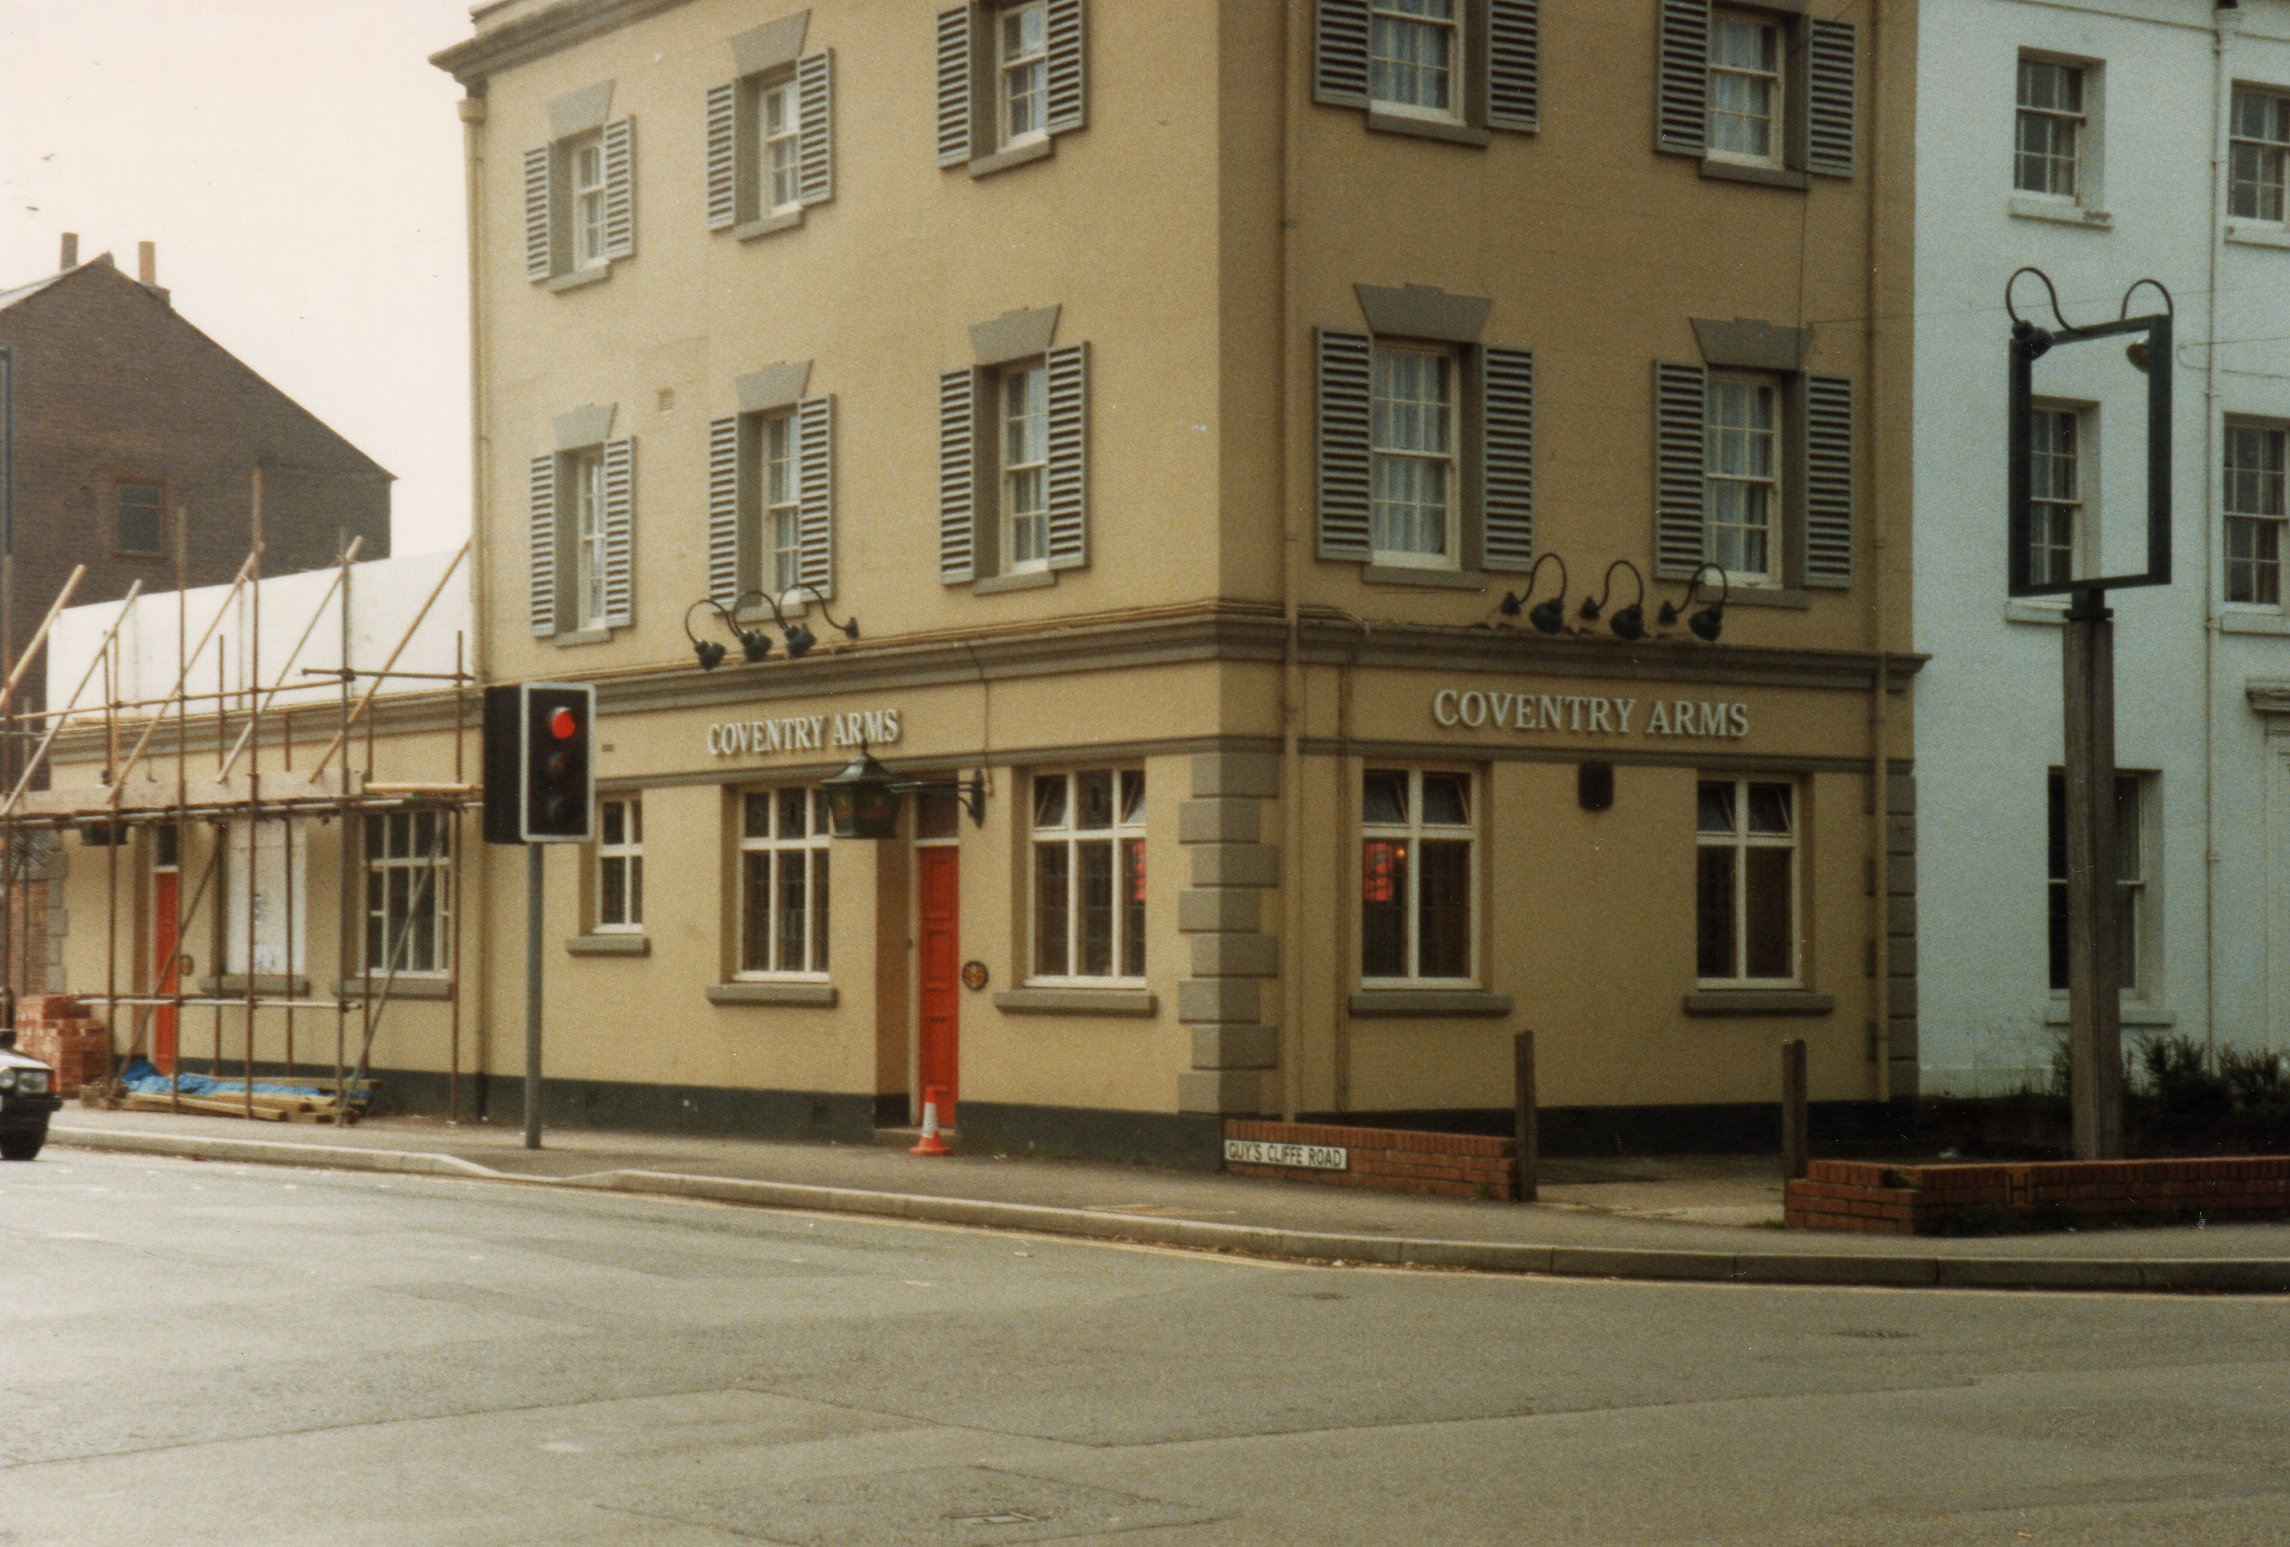 The Coventry Arms